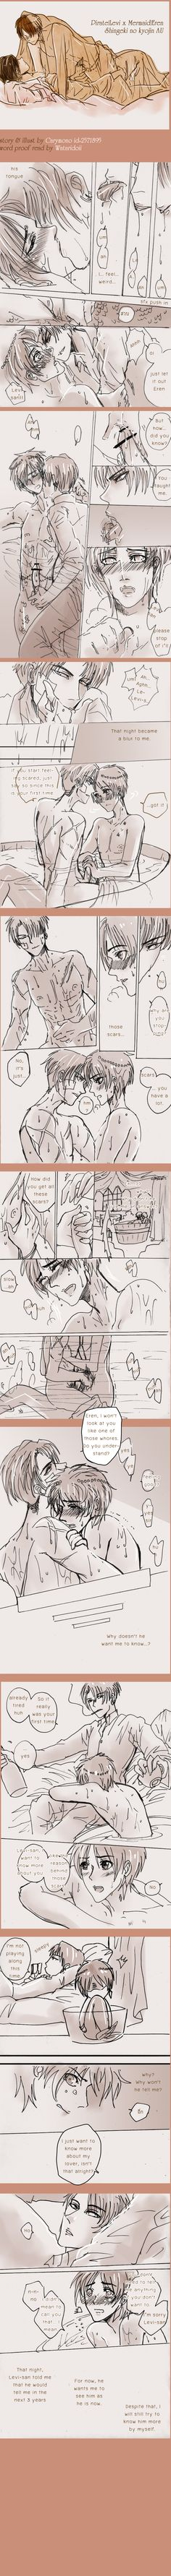 SnK'AU : Pirate!Levi x Mermaid!Eren part12 by illuscarymono.deviantart.com on @DeviantArt